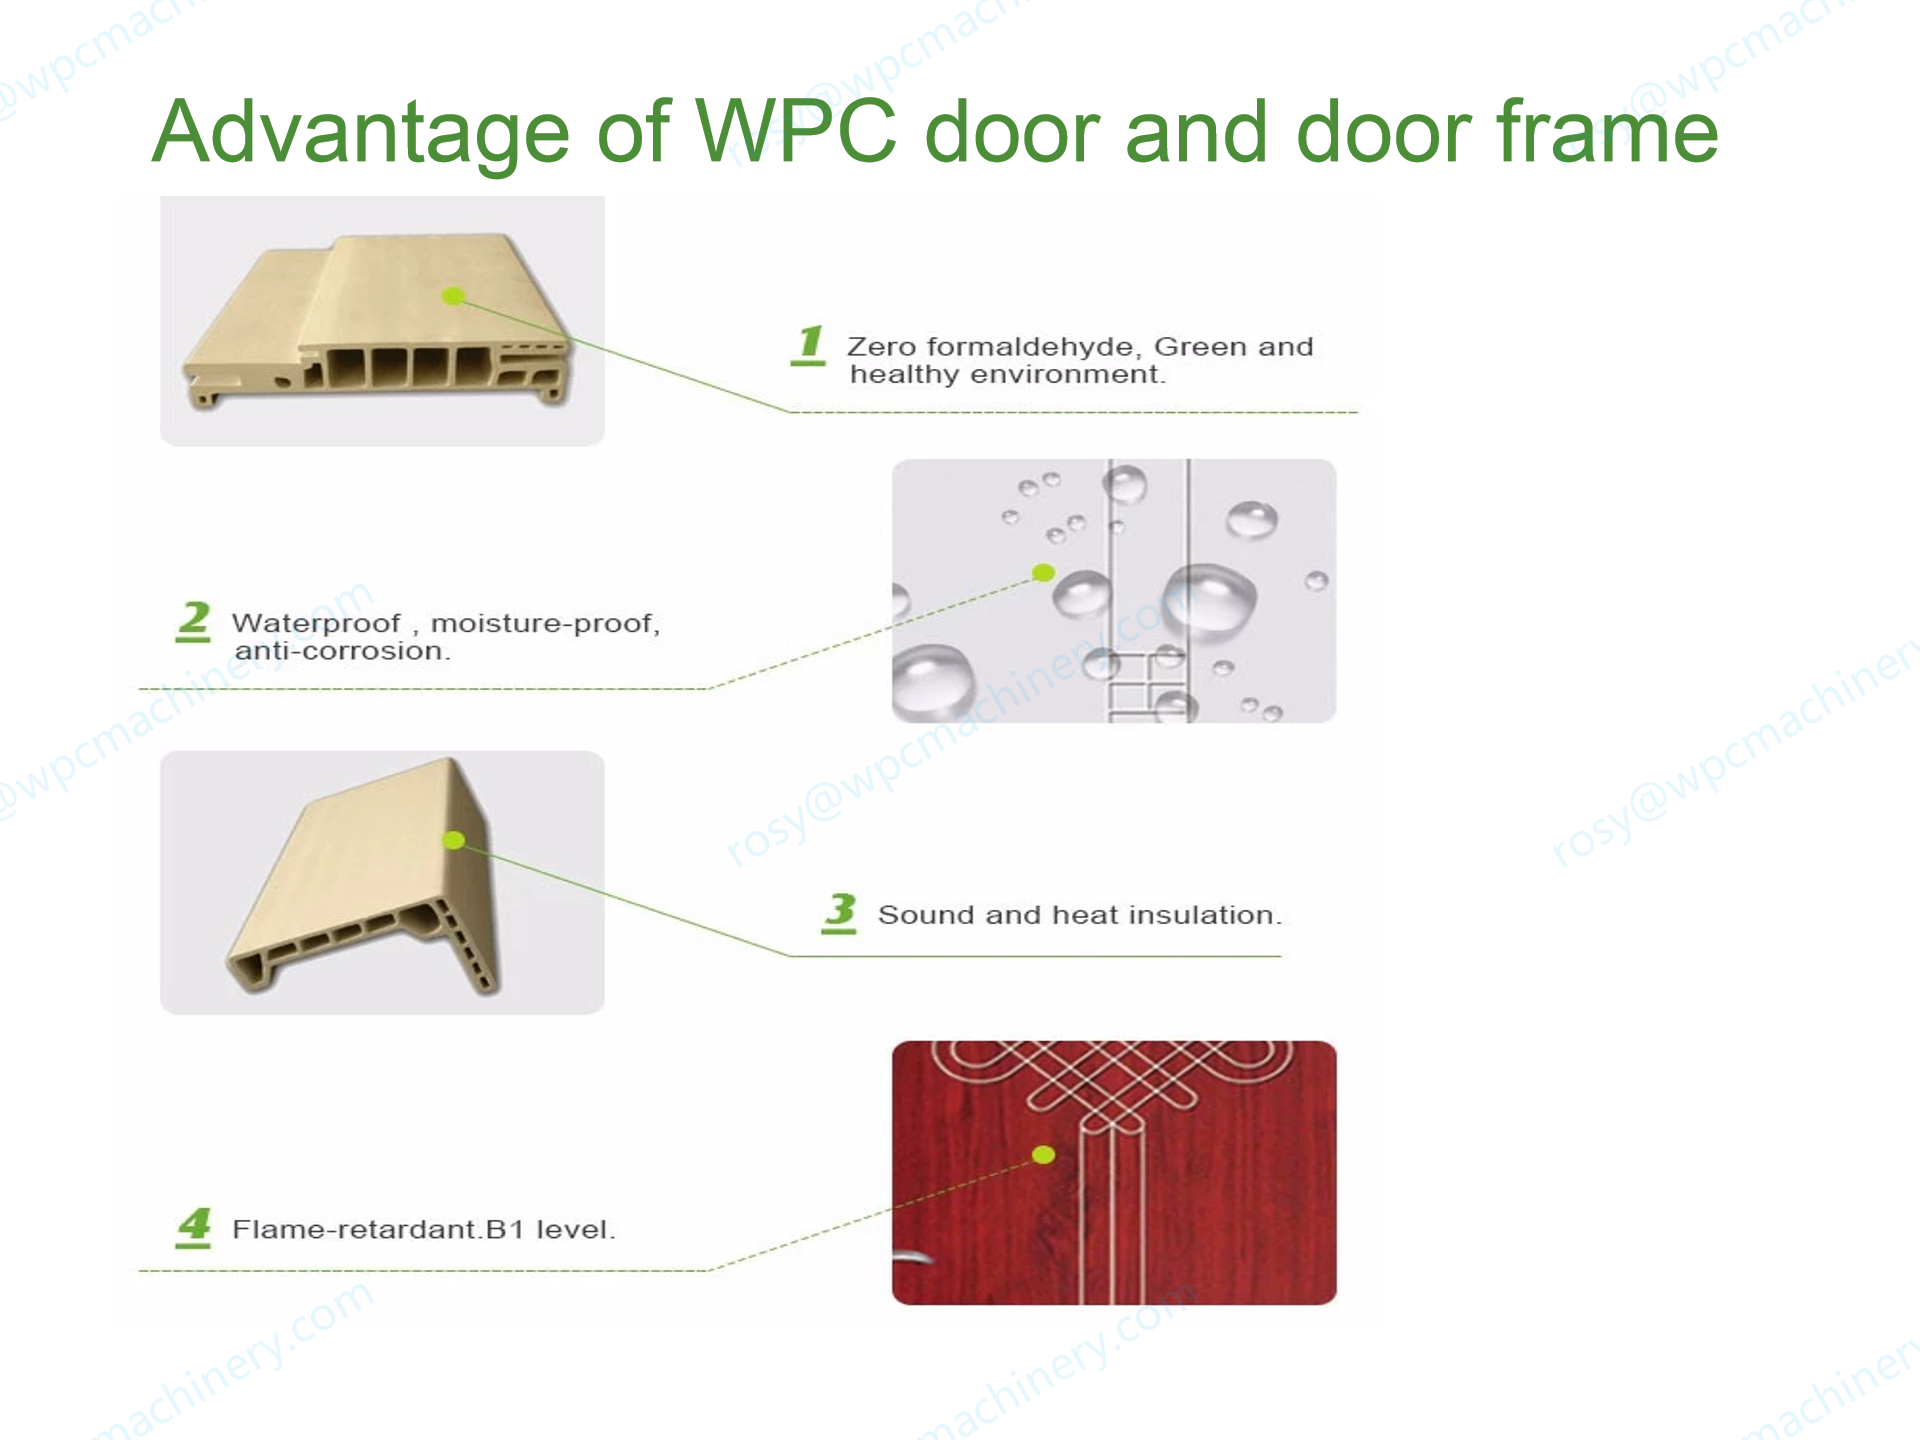 advantage of wpc door and door frame